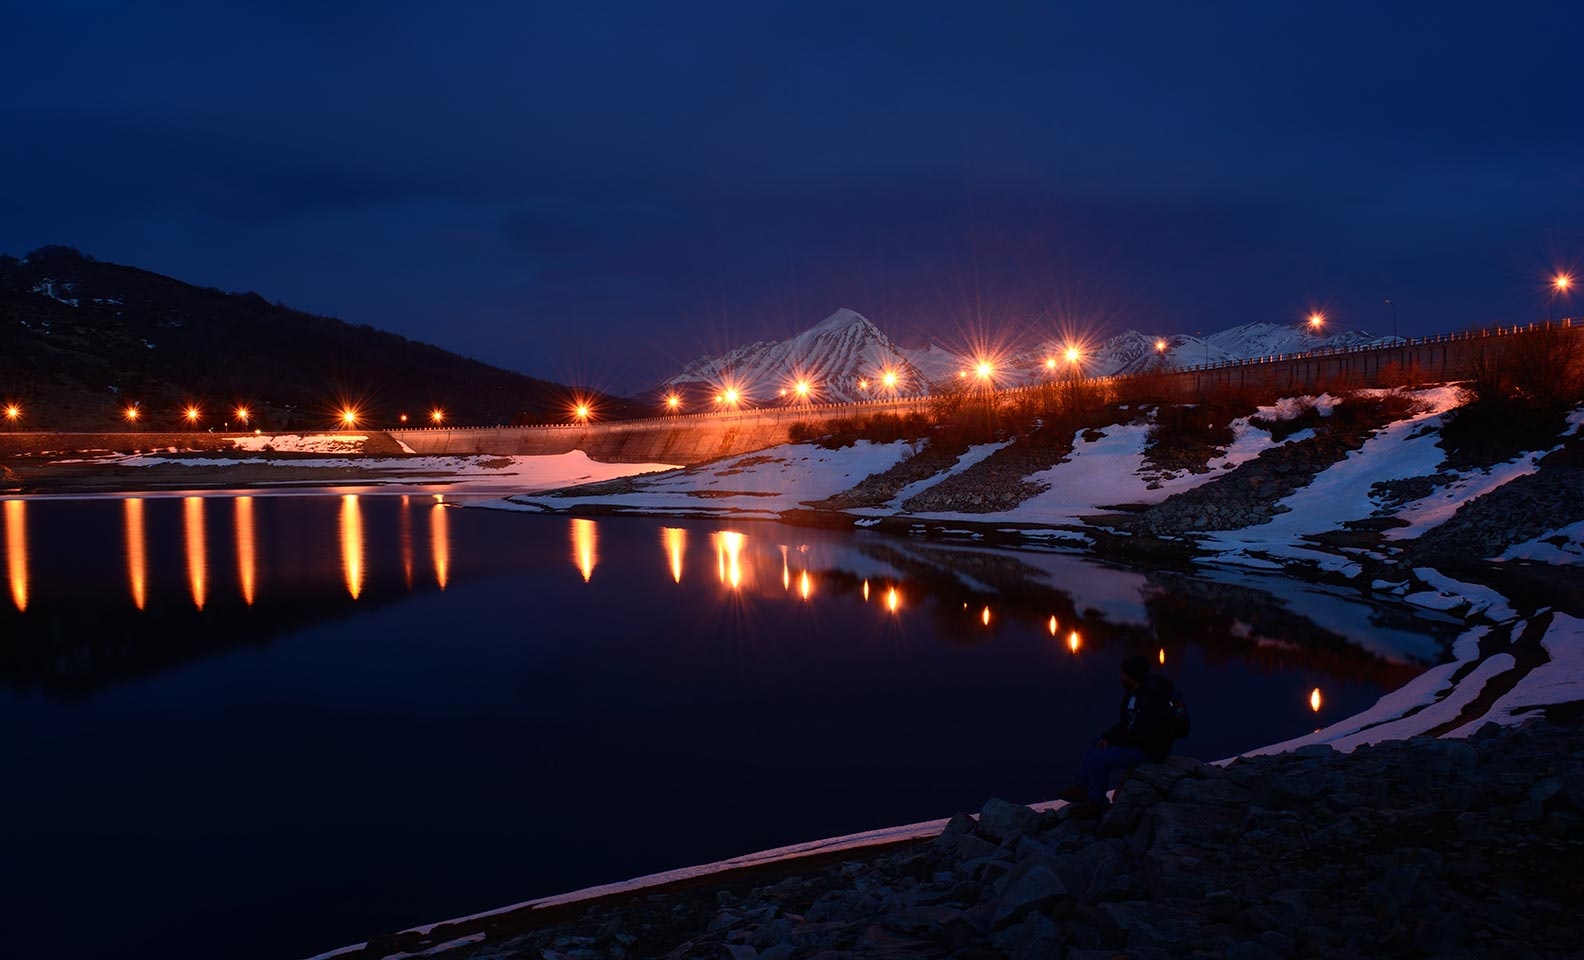 Hydroelectric power plant illuminated at night